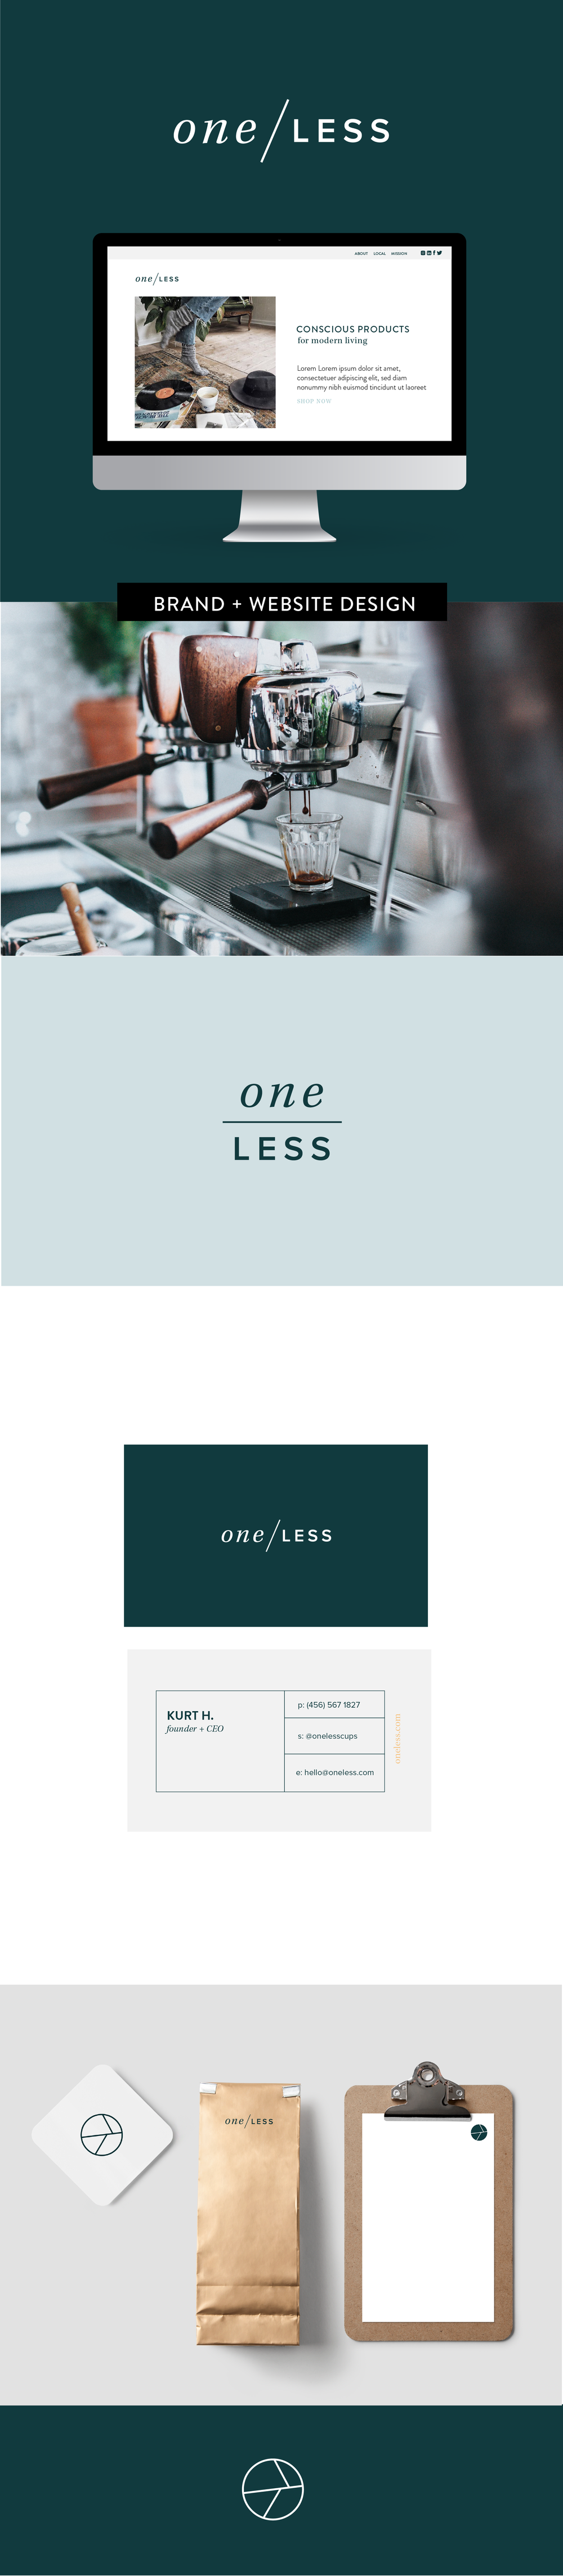 Brand Identity design by Salt Design Co. for One Less in Calgary Canada